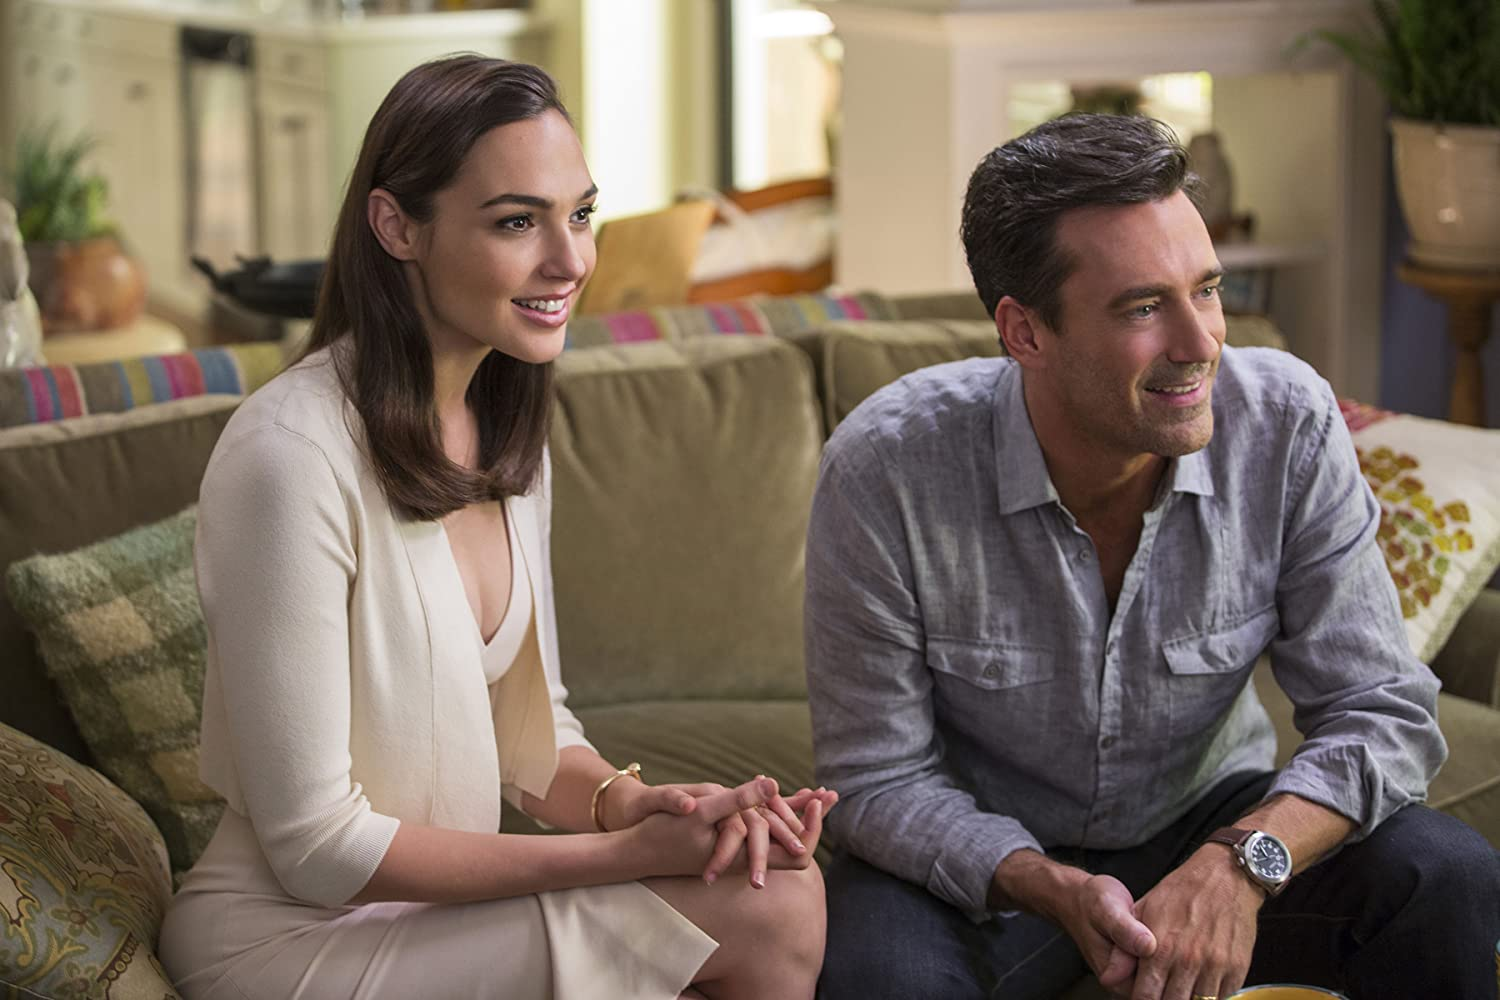 Jon Hamm and Gal Gadot in Keeping Up with the Joneses (2016)